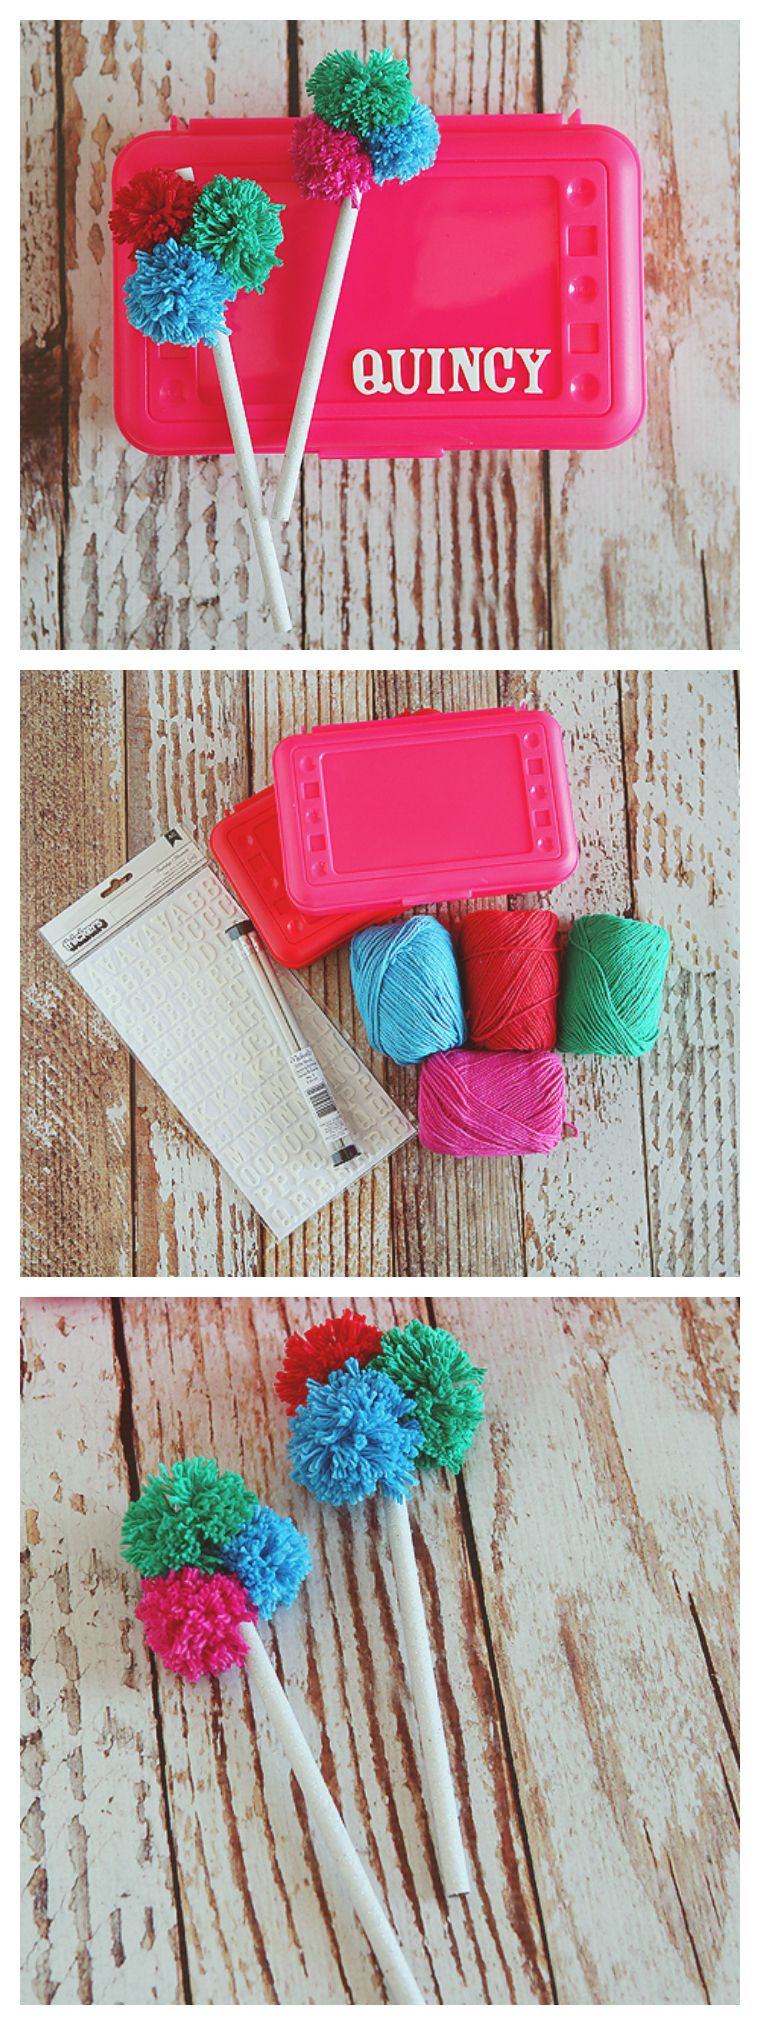 PomPom Pencils Back to school crafts, Crafts, Diy